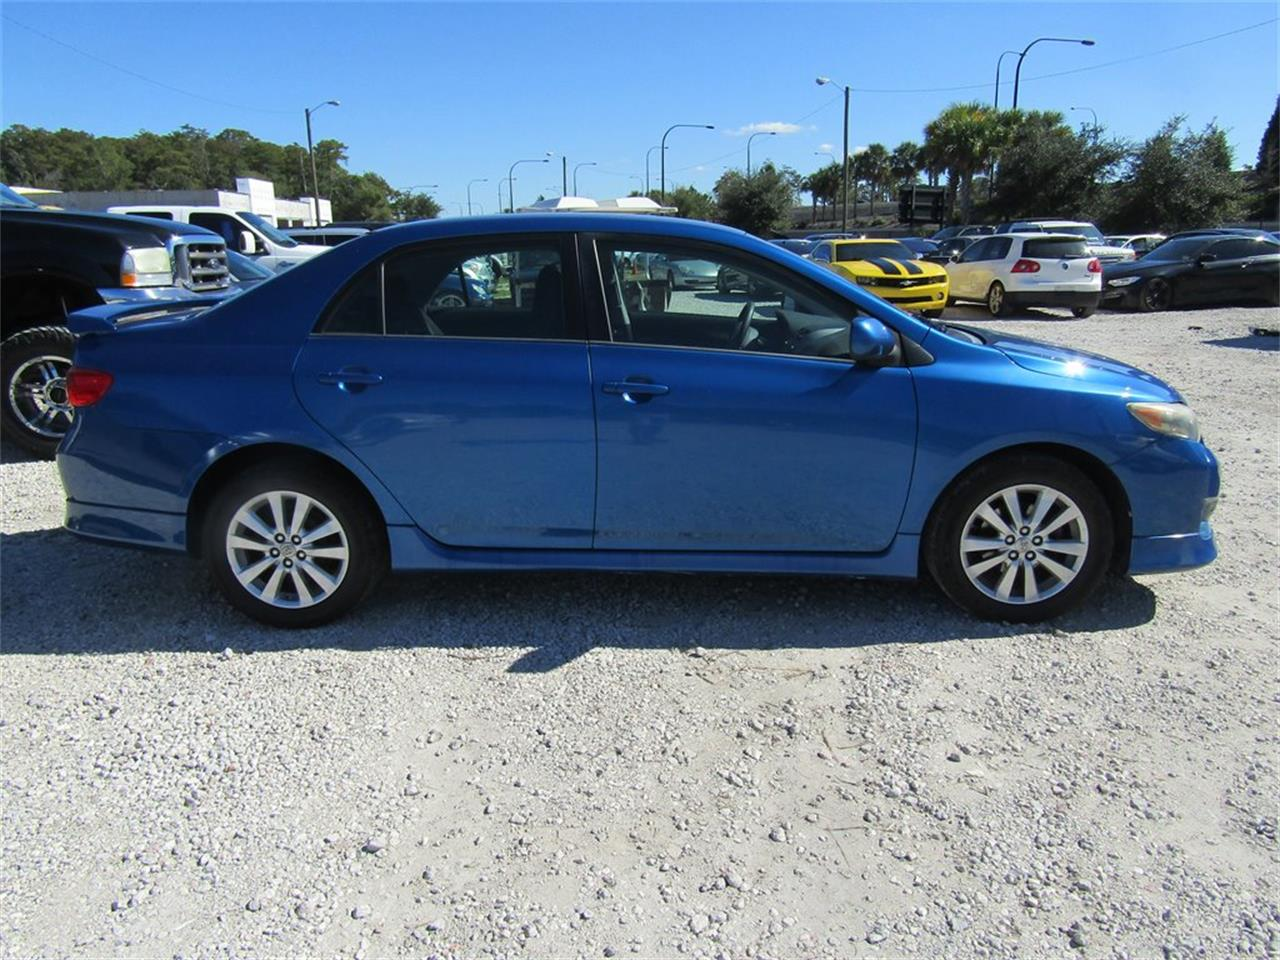 2009 Toyota Corolla (CC-1297782) for sale in Orlando, Florida